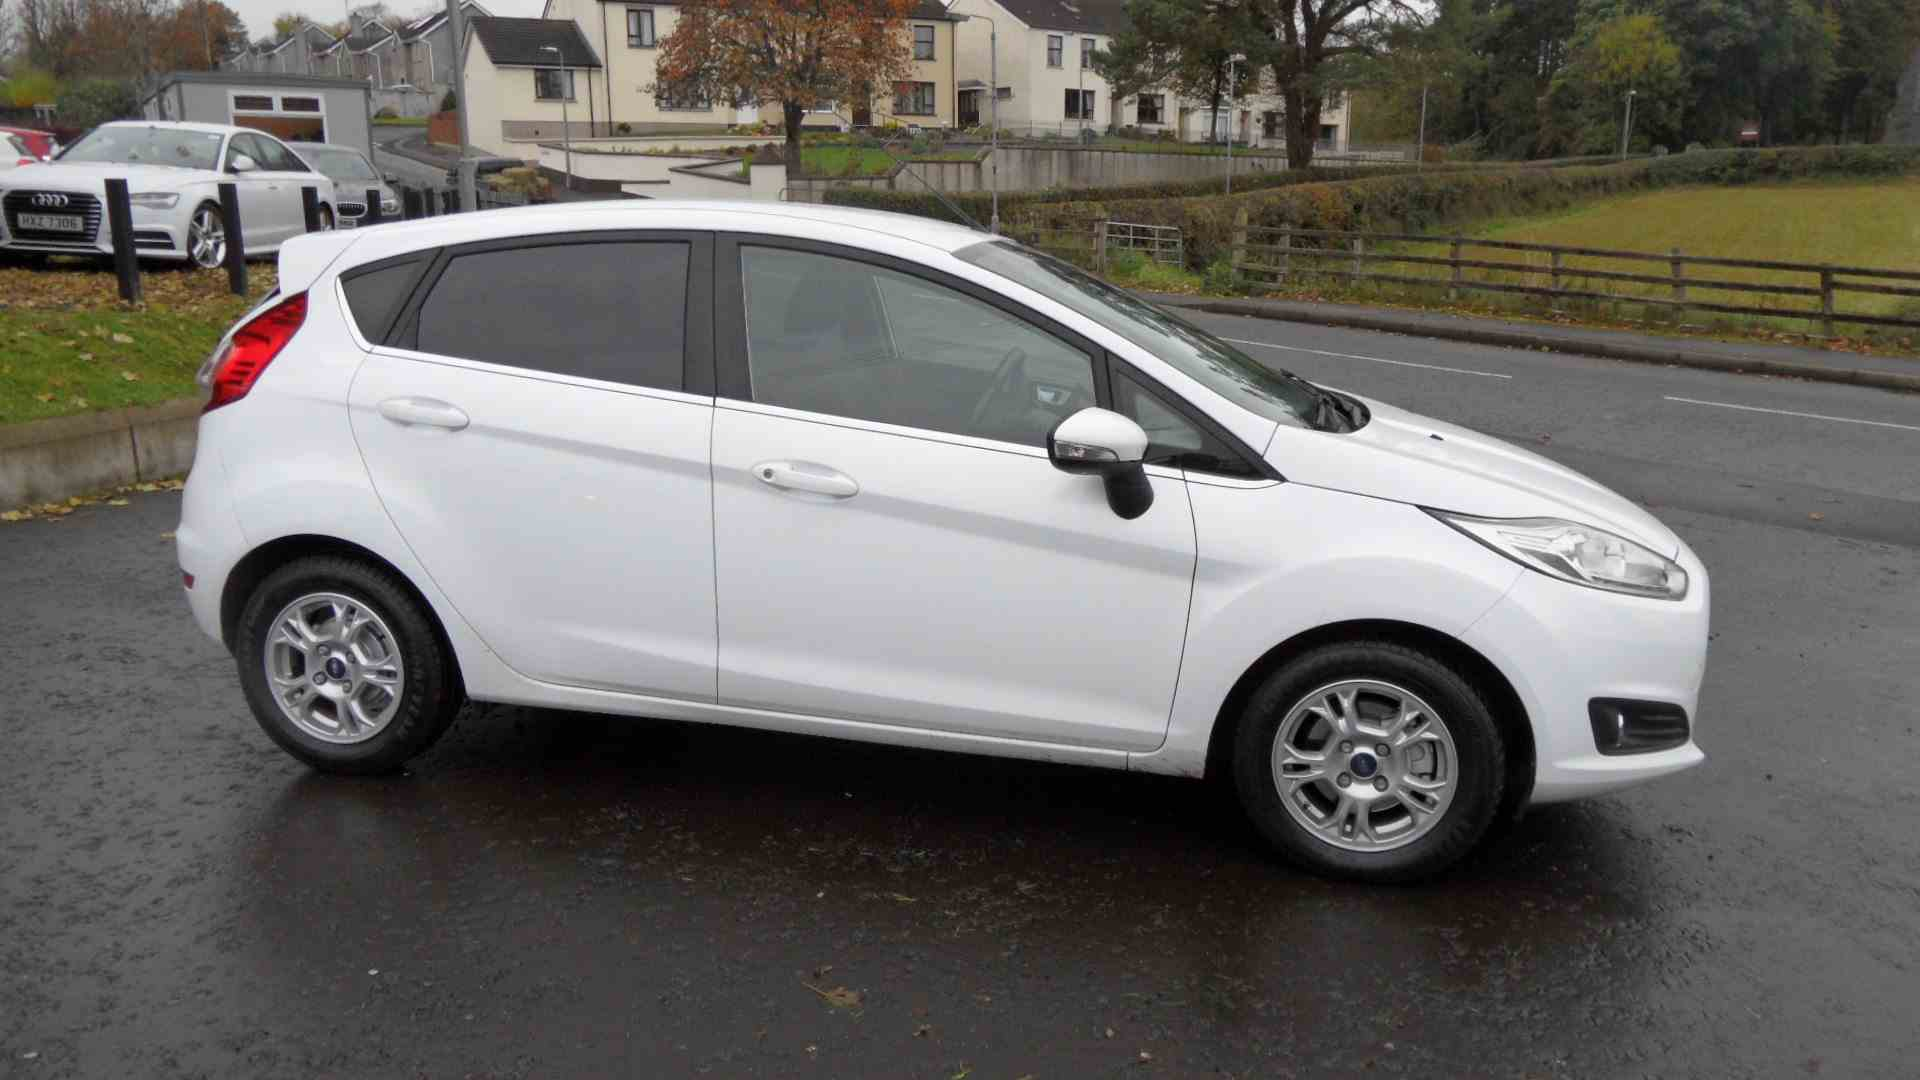 Beautiful Fiesta Titanium 1.6 TDCi, low miles, 6 months warranty, give us a call